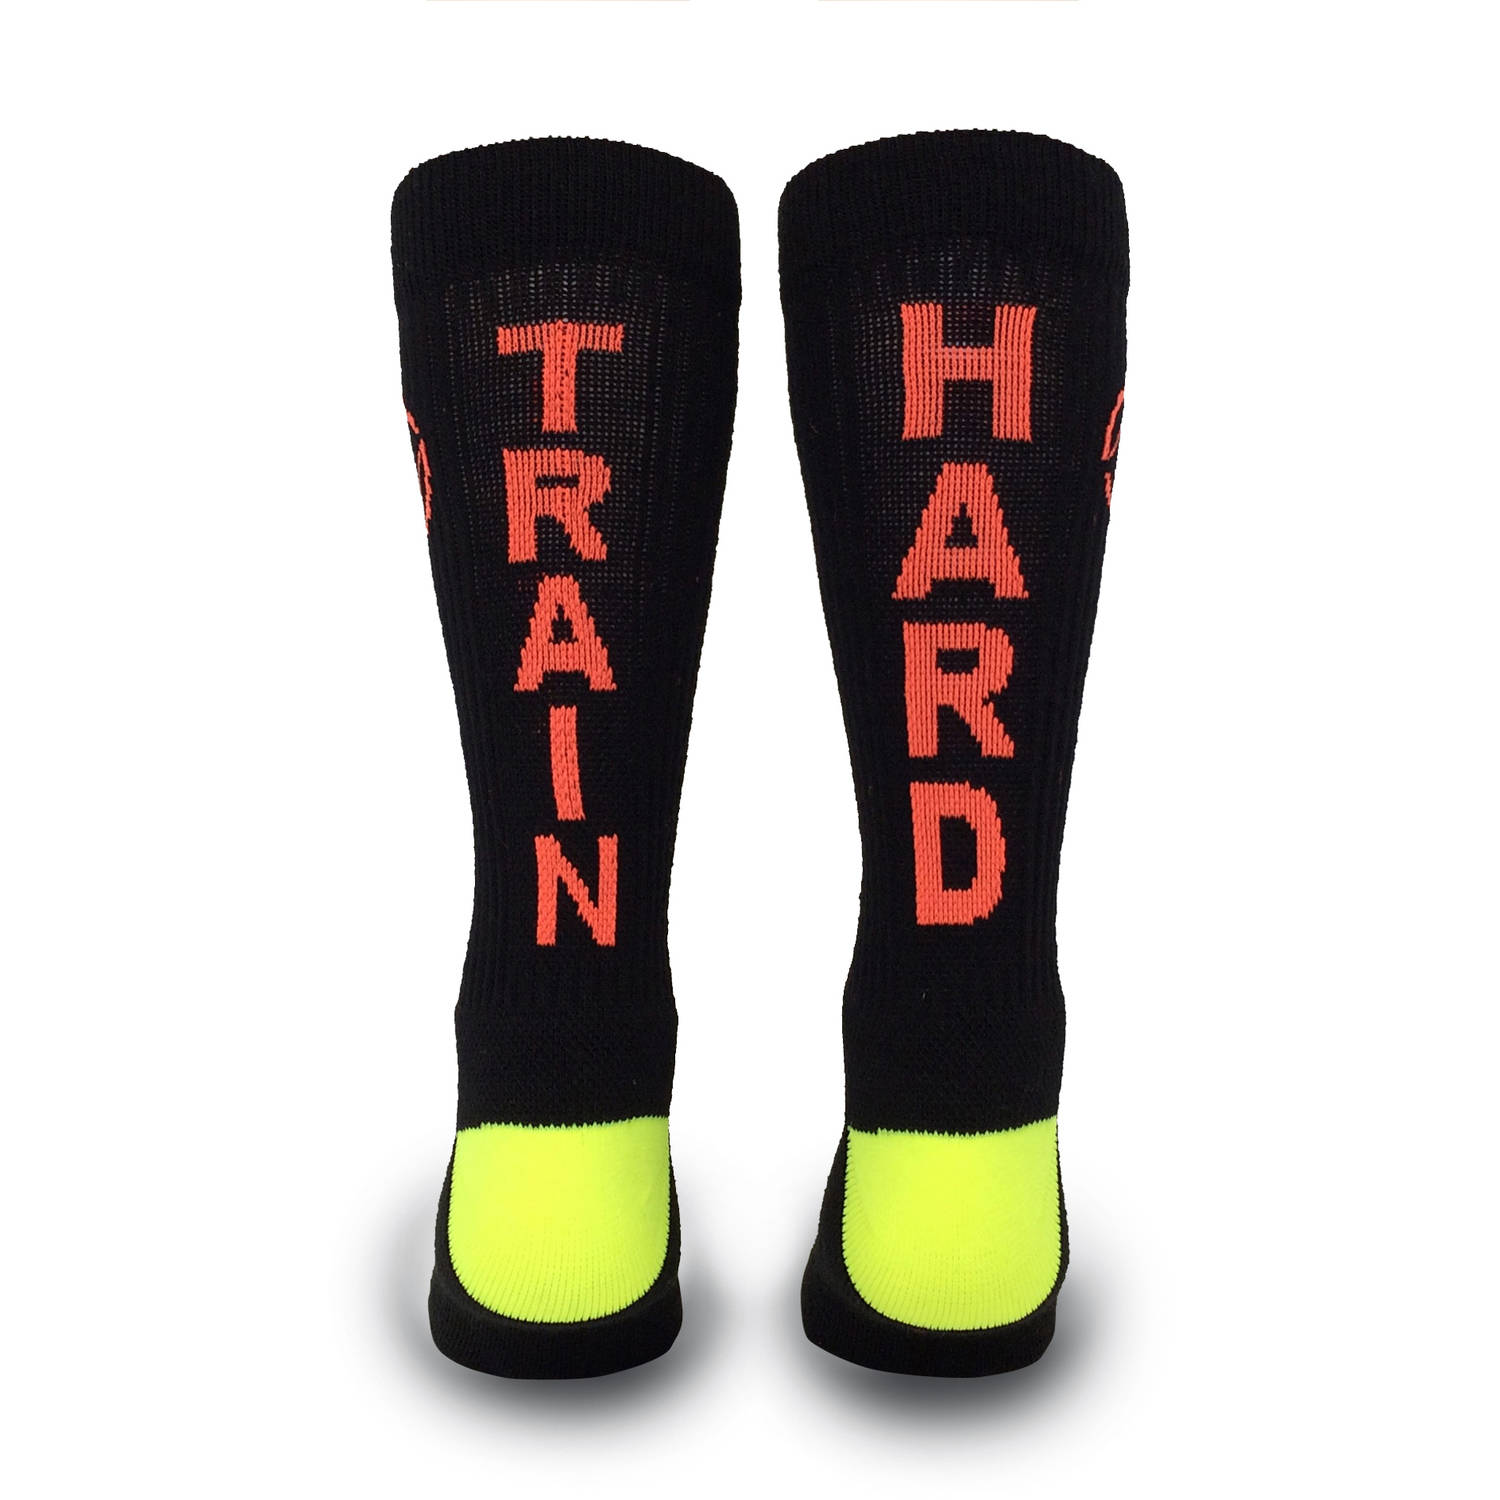 Inspyr Socks Train Hard  Athletic Lifestyle Crew Sock